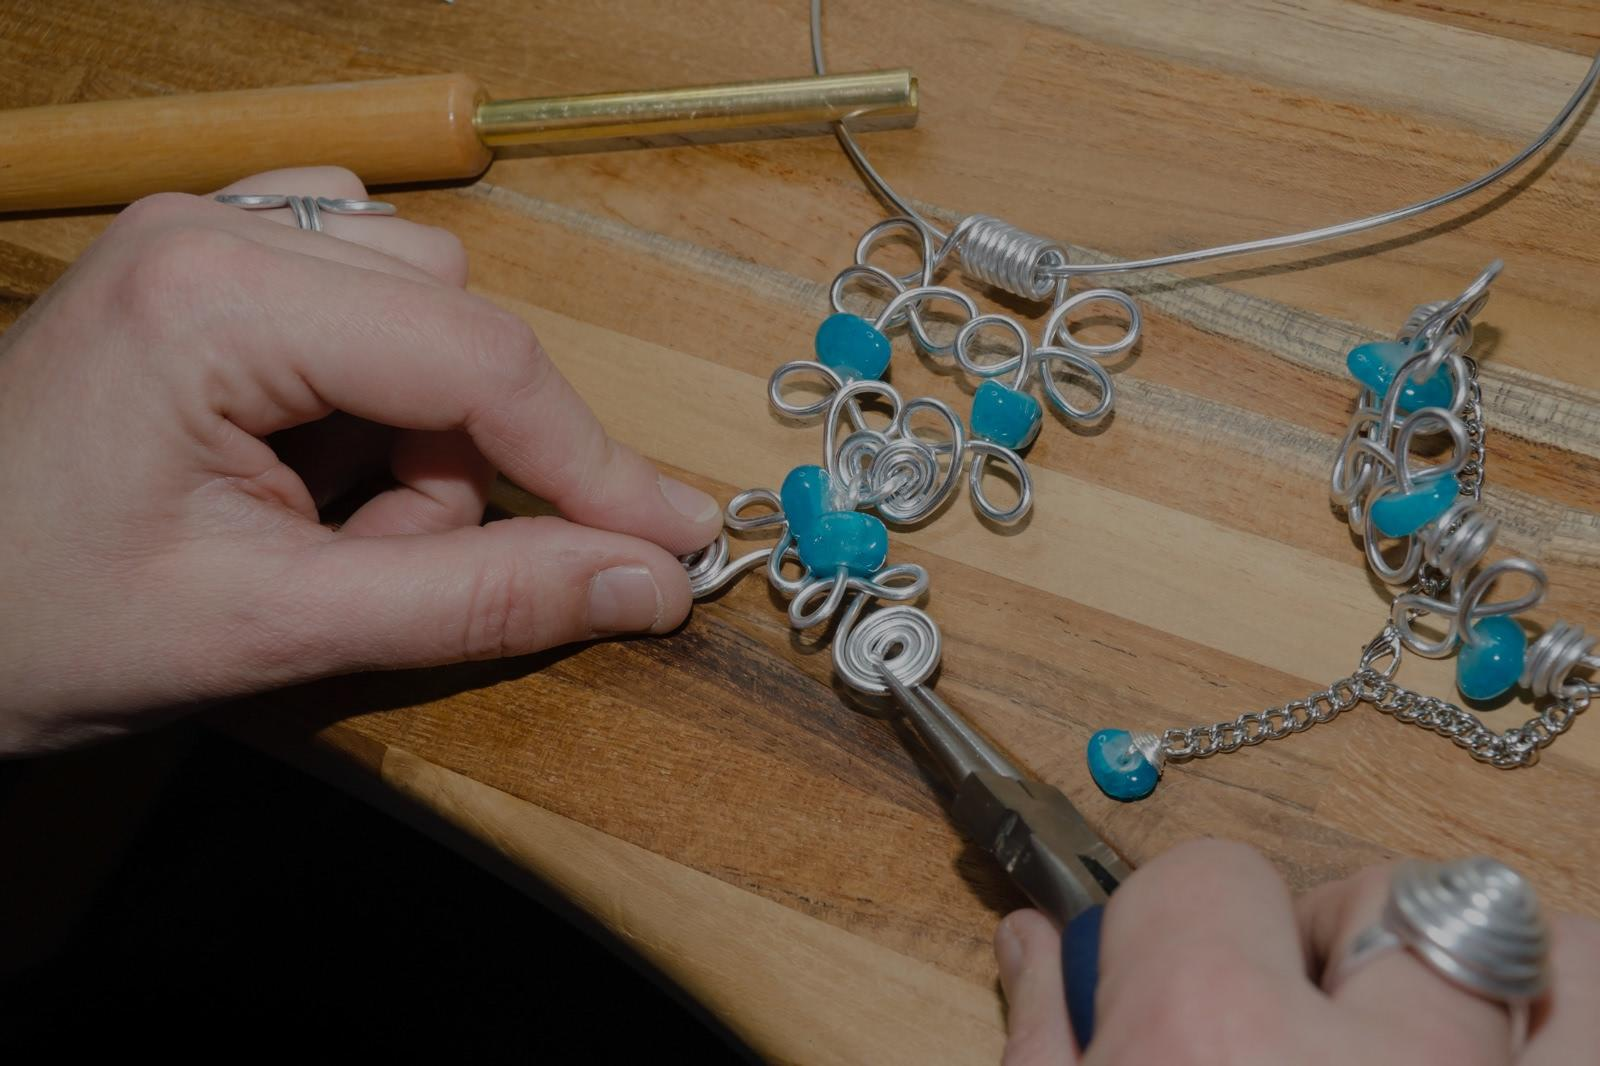 Picture of jewelry design lessons in Perth Amboy, NJ